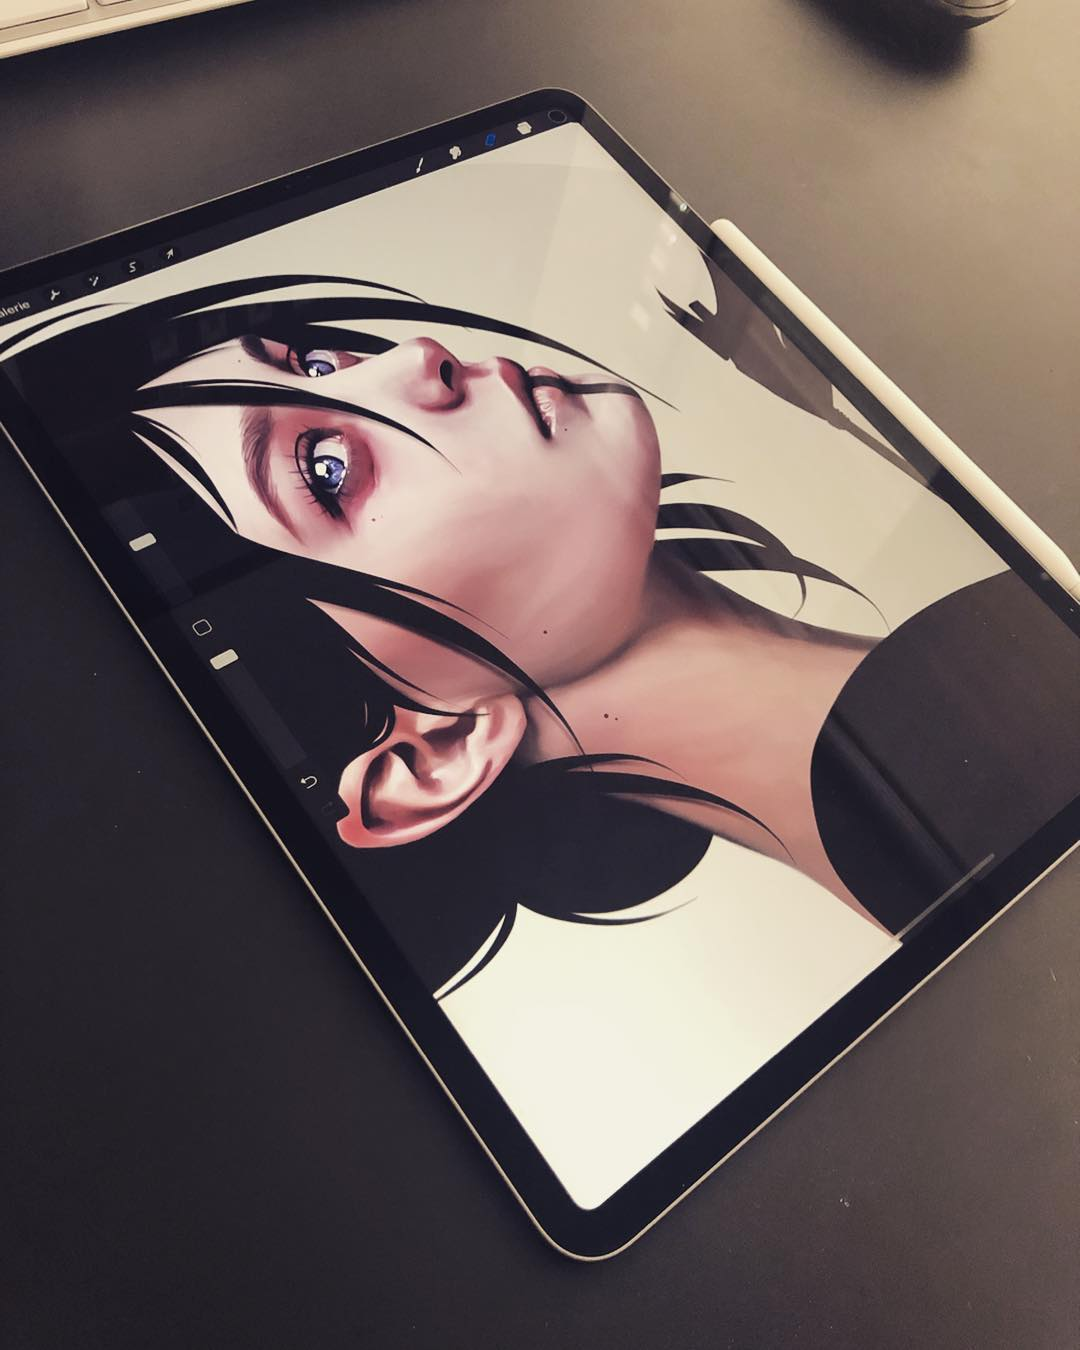 26-Year-Old Digital Artist With Model Looks Creates Stunning Female Illustrations On Tablet 2